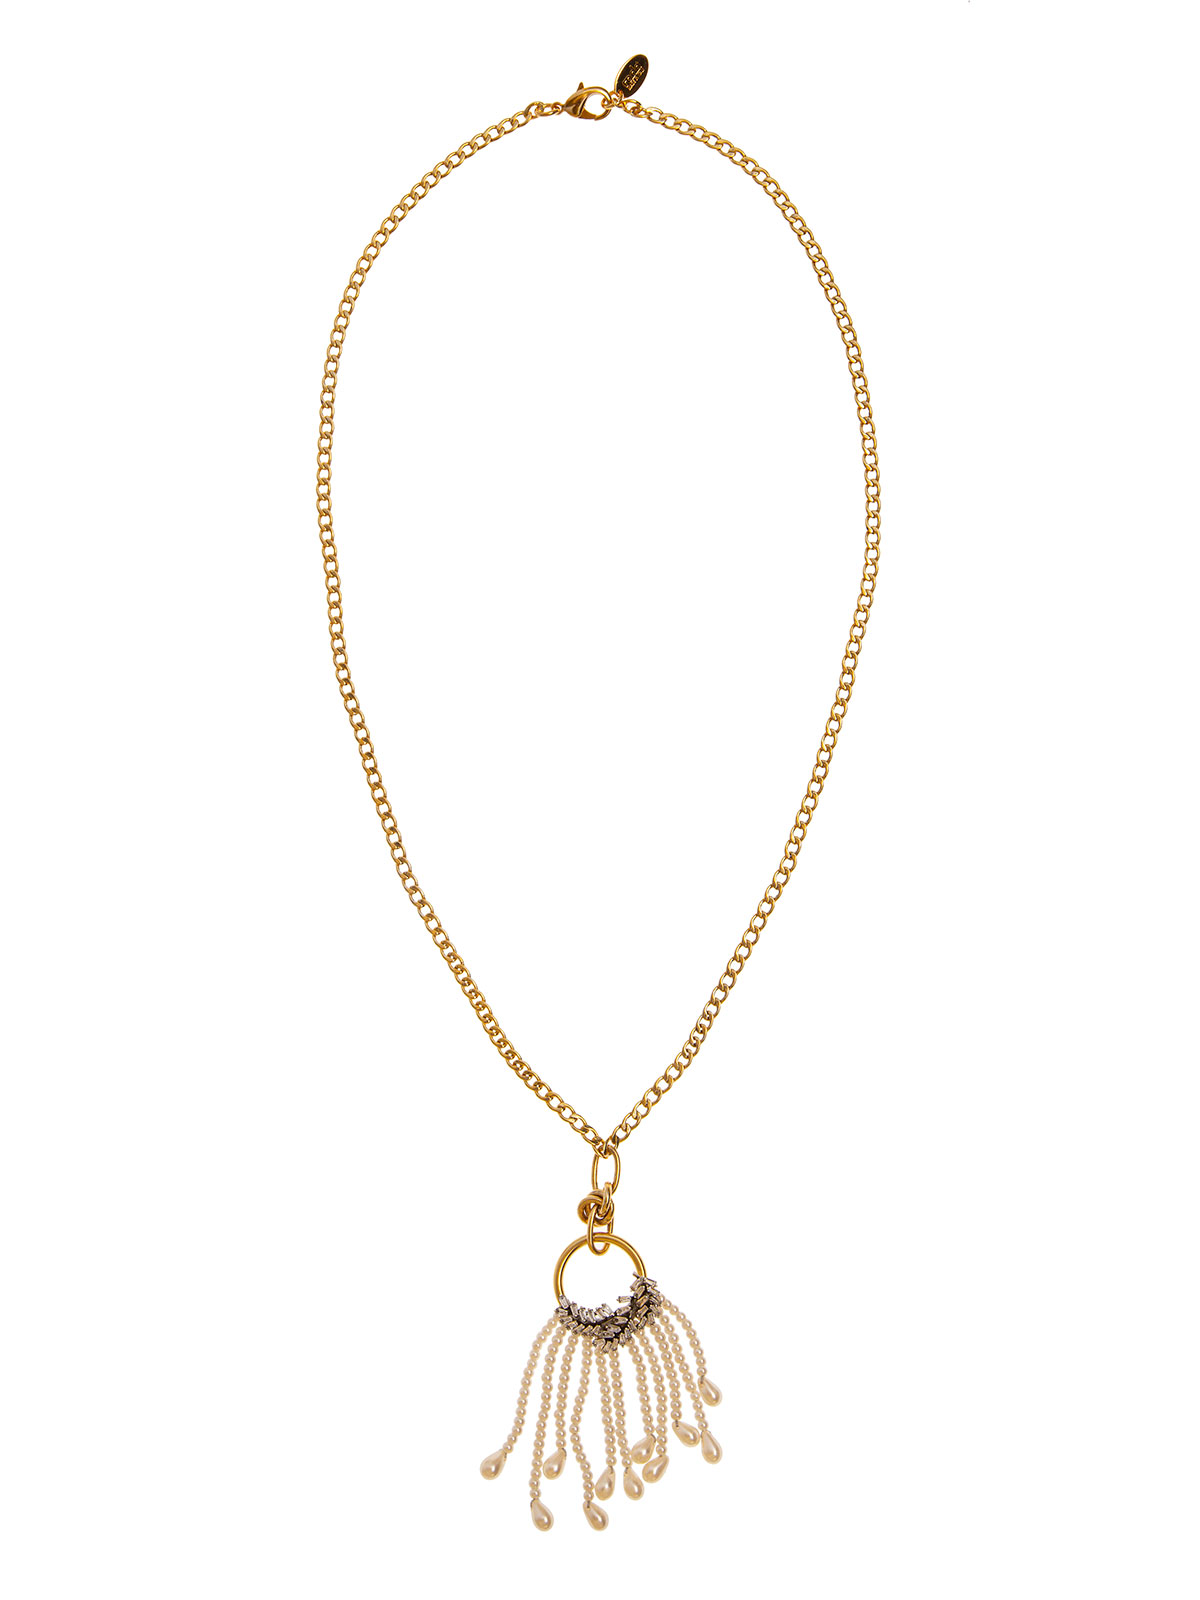 Chain necklace with crystal leaves decoration and pearls